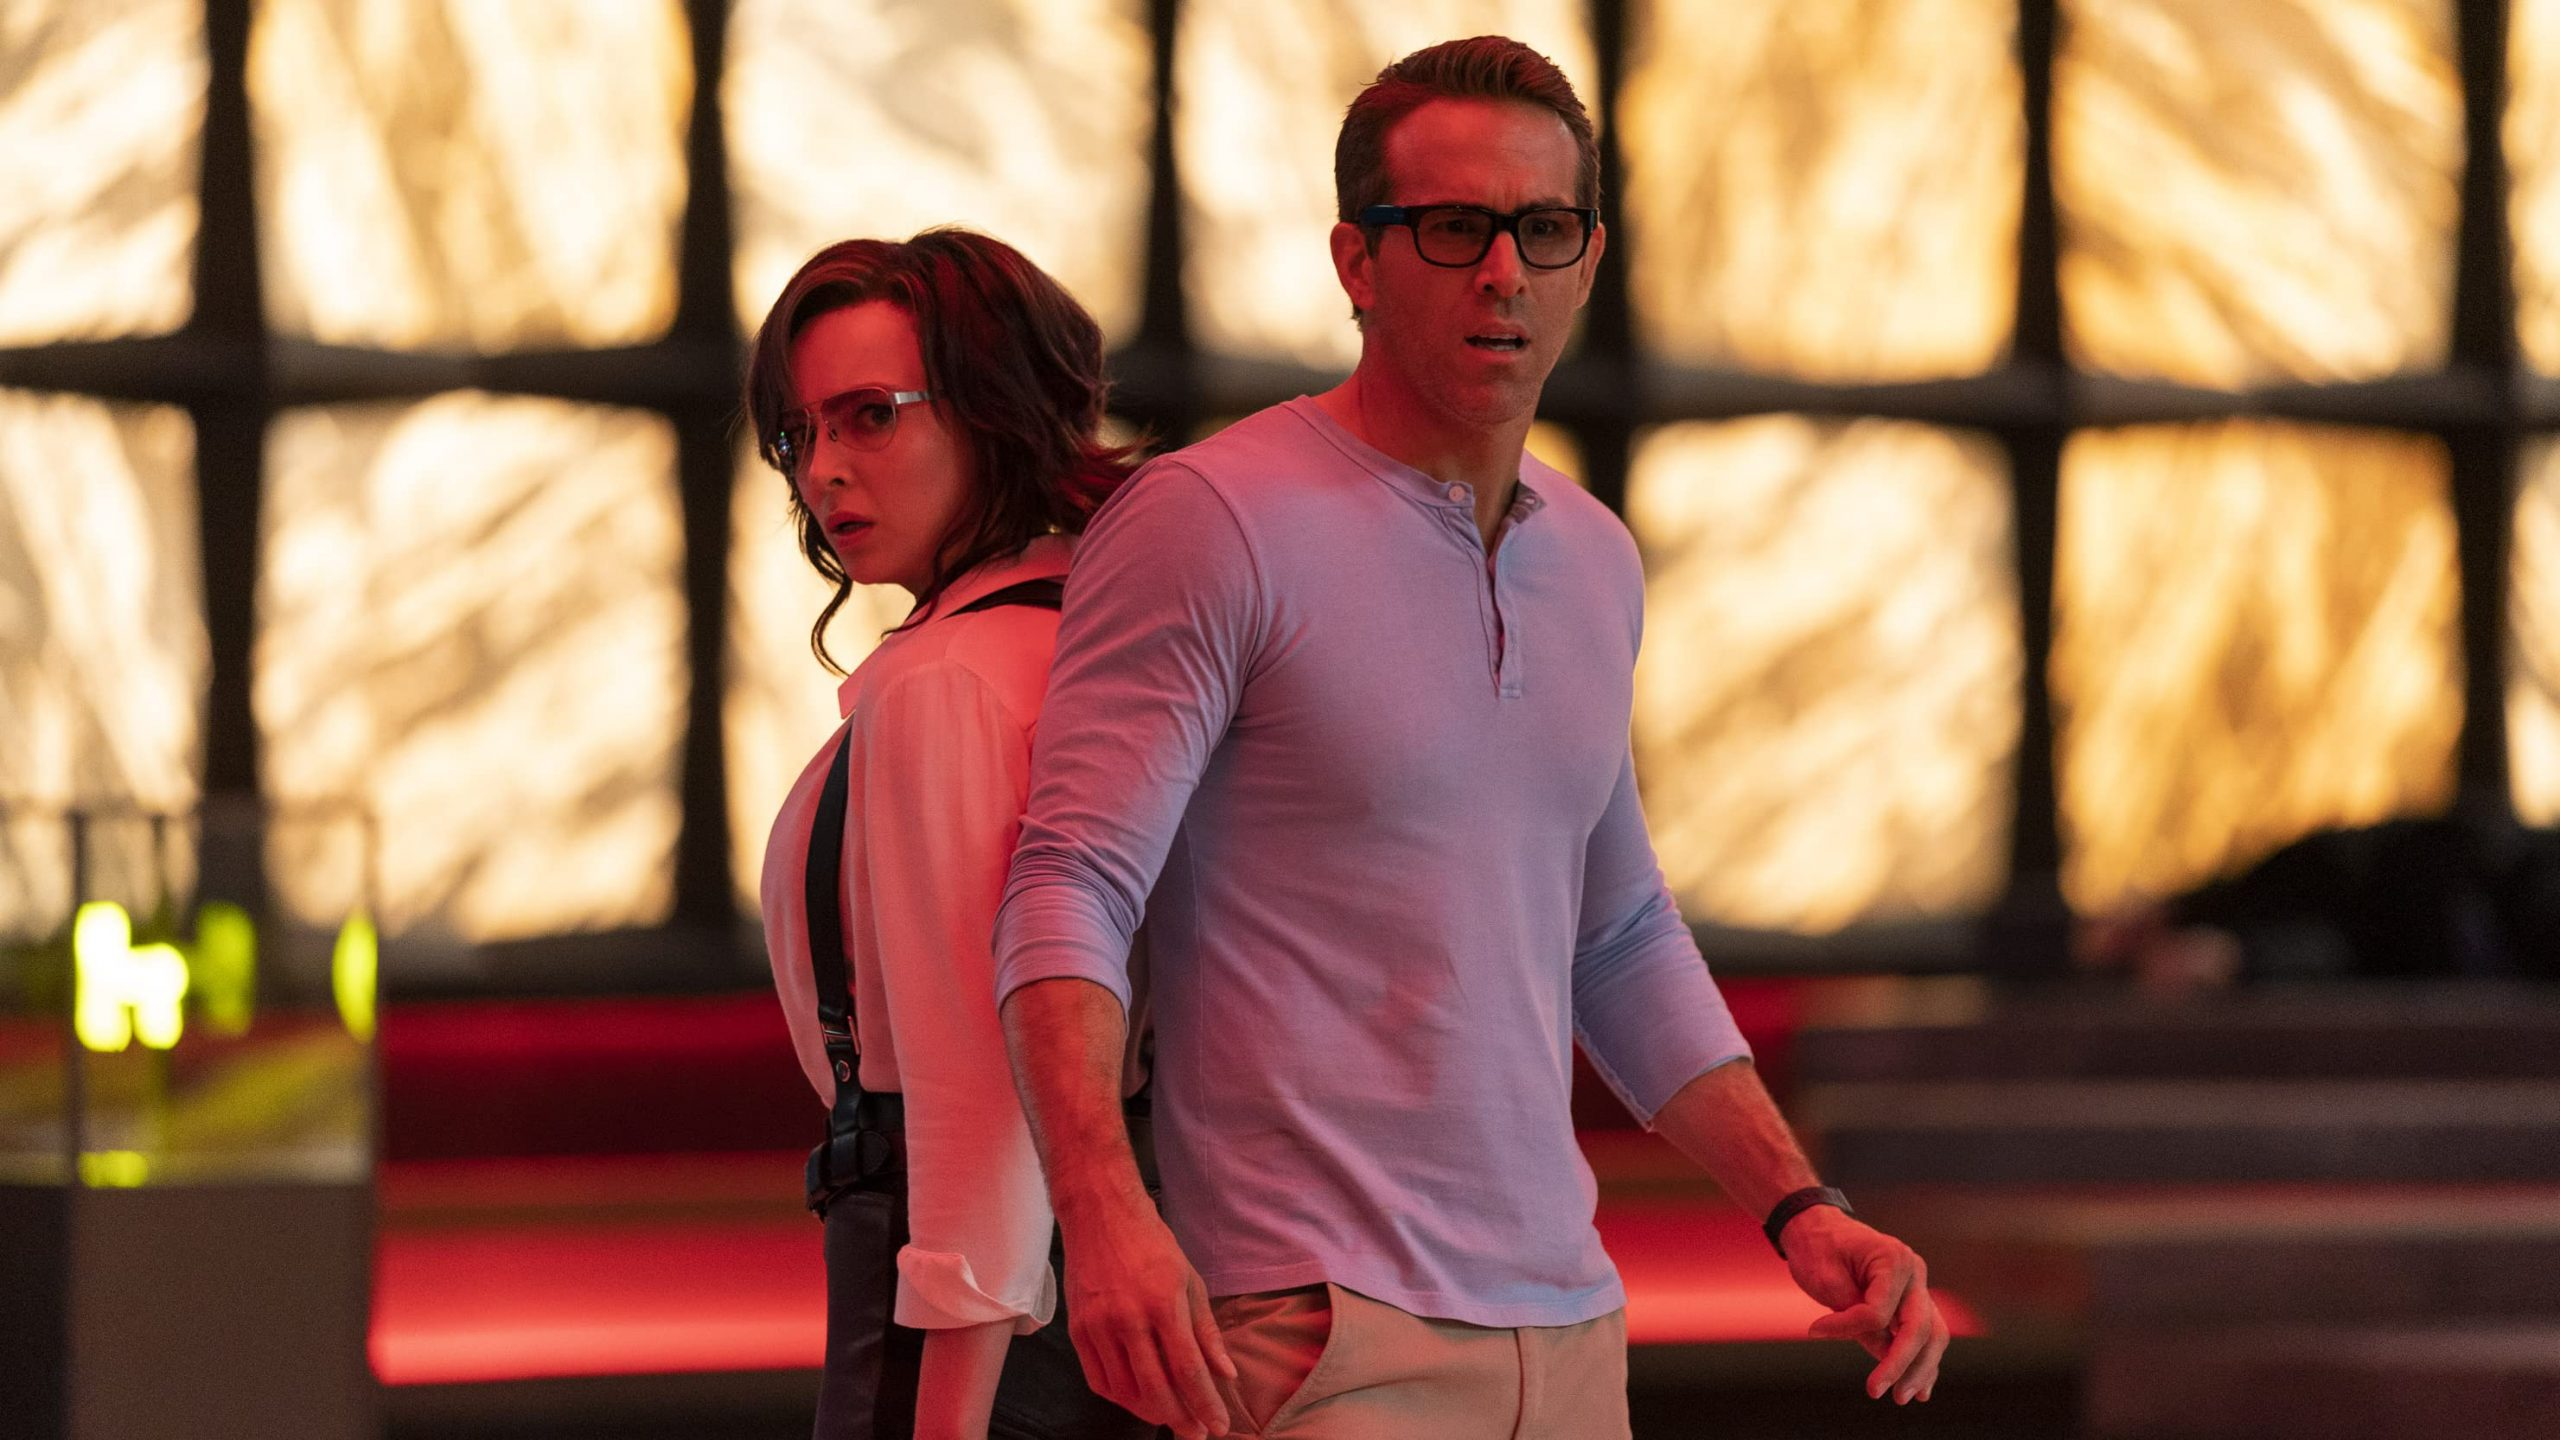 When Will Ryan Reynold's Free Guy Release In Theaters?